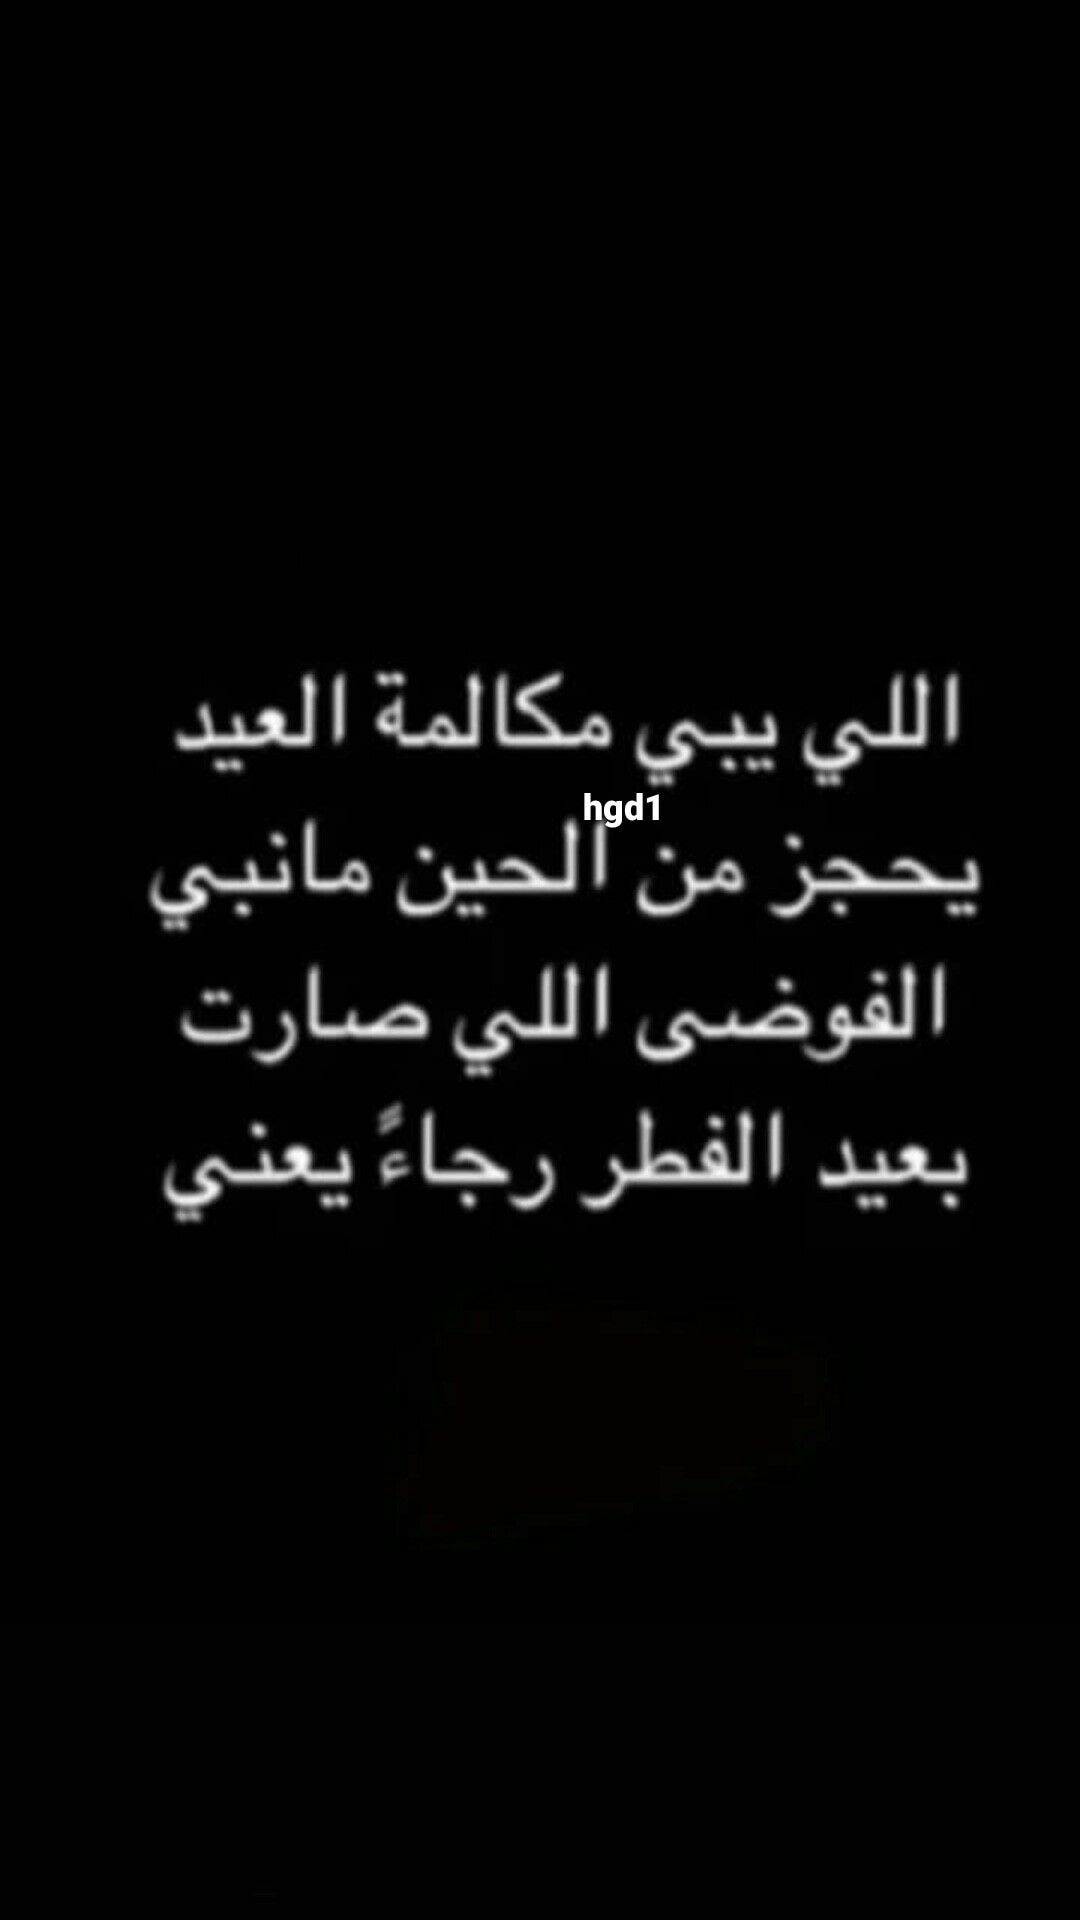 Pin By Alaa Alsaud On Arabic Quotes Funny Arabic Quotes Arabic Quotes Quotes